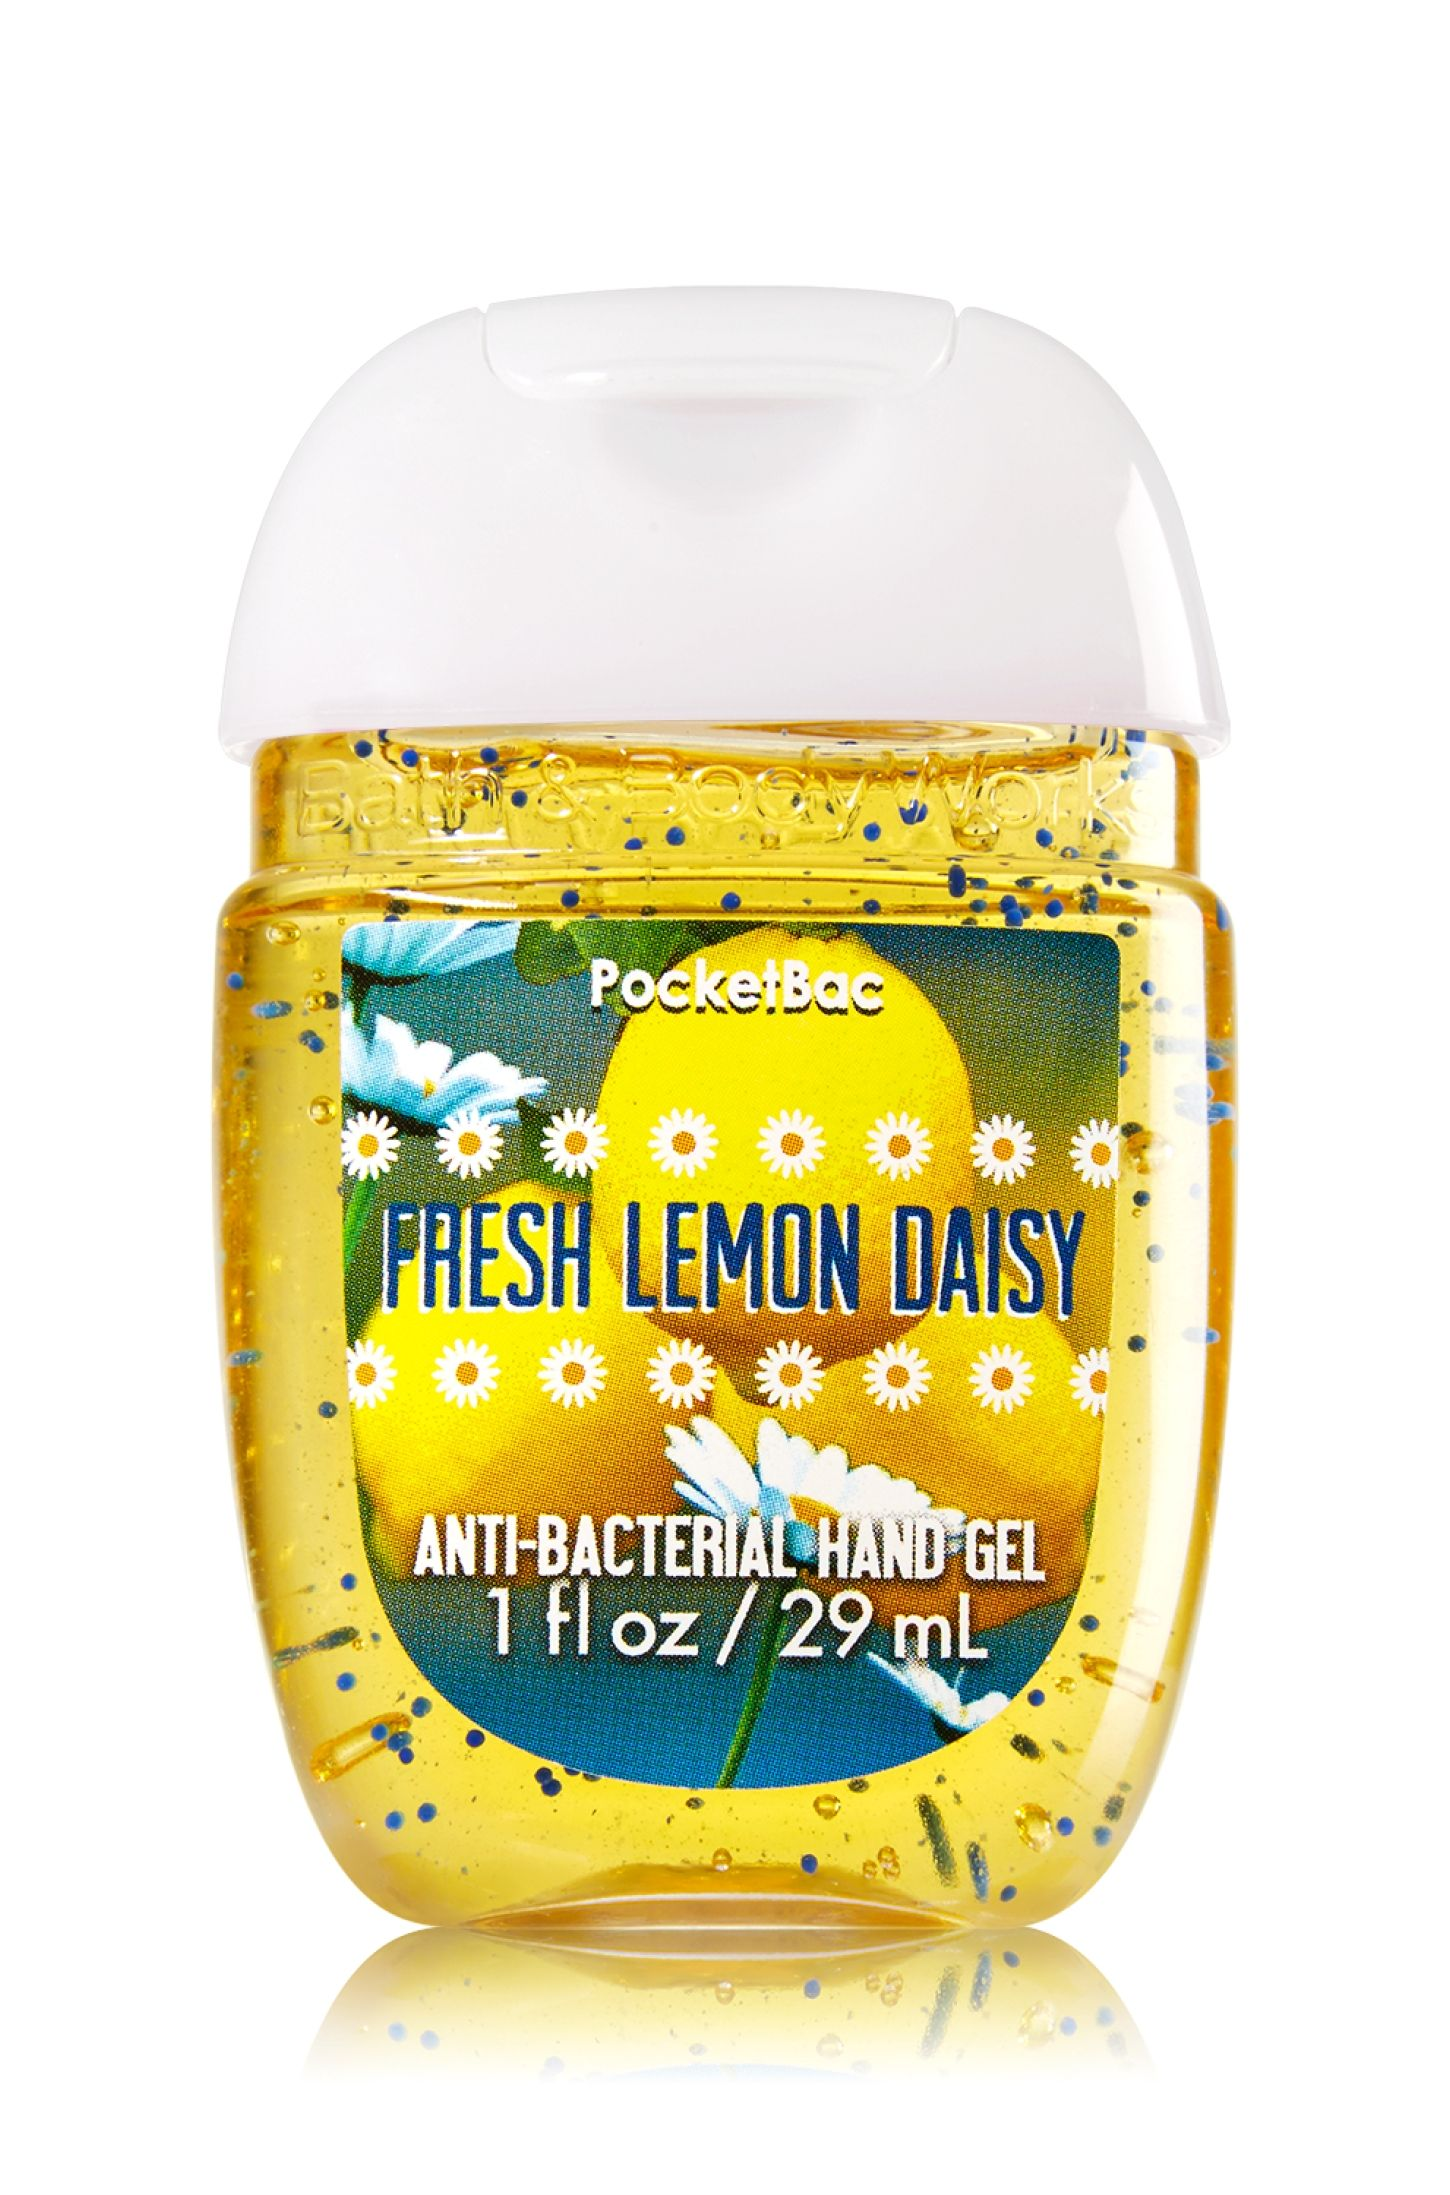 Bath Body Works Fresh Lemon Daisy Pocketbac Sanitizing Hand Gel